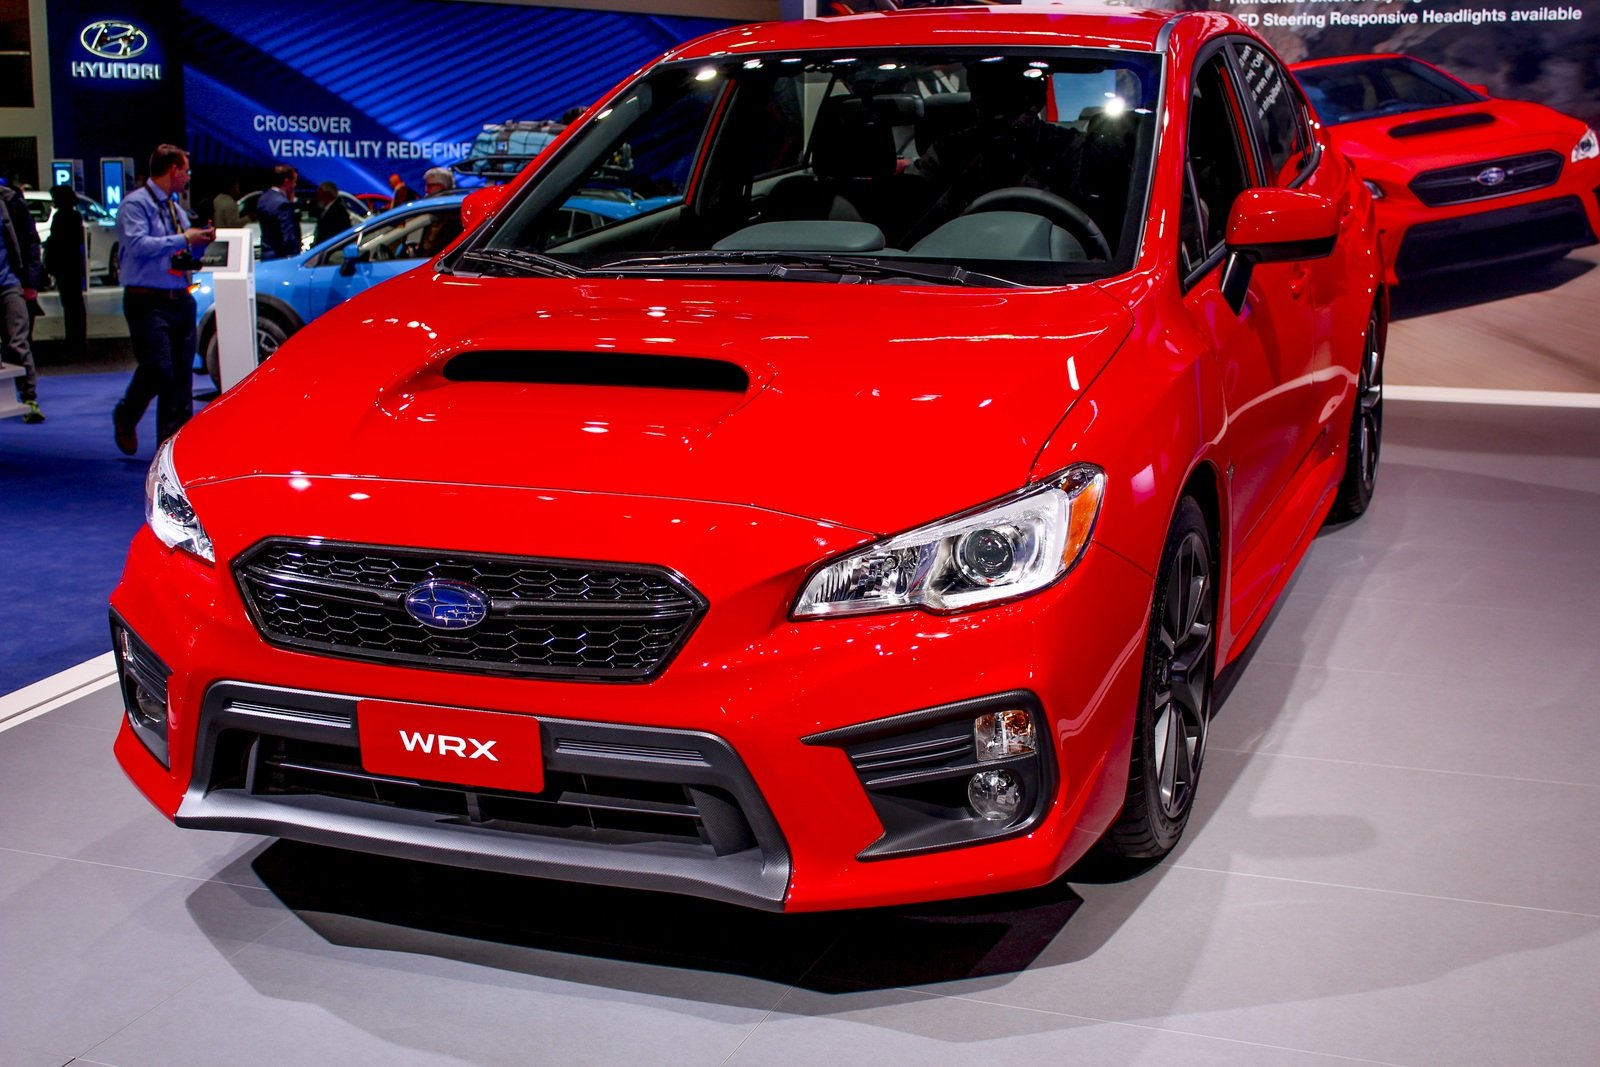 2018 subaru wrx picture 702533 car review top speed. Black Bedroom Furniture Sets. Home Design Ideas